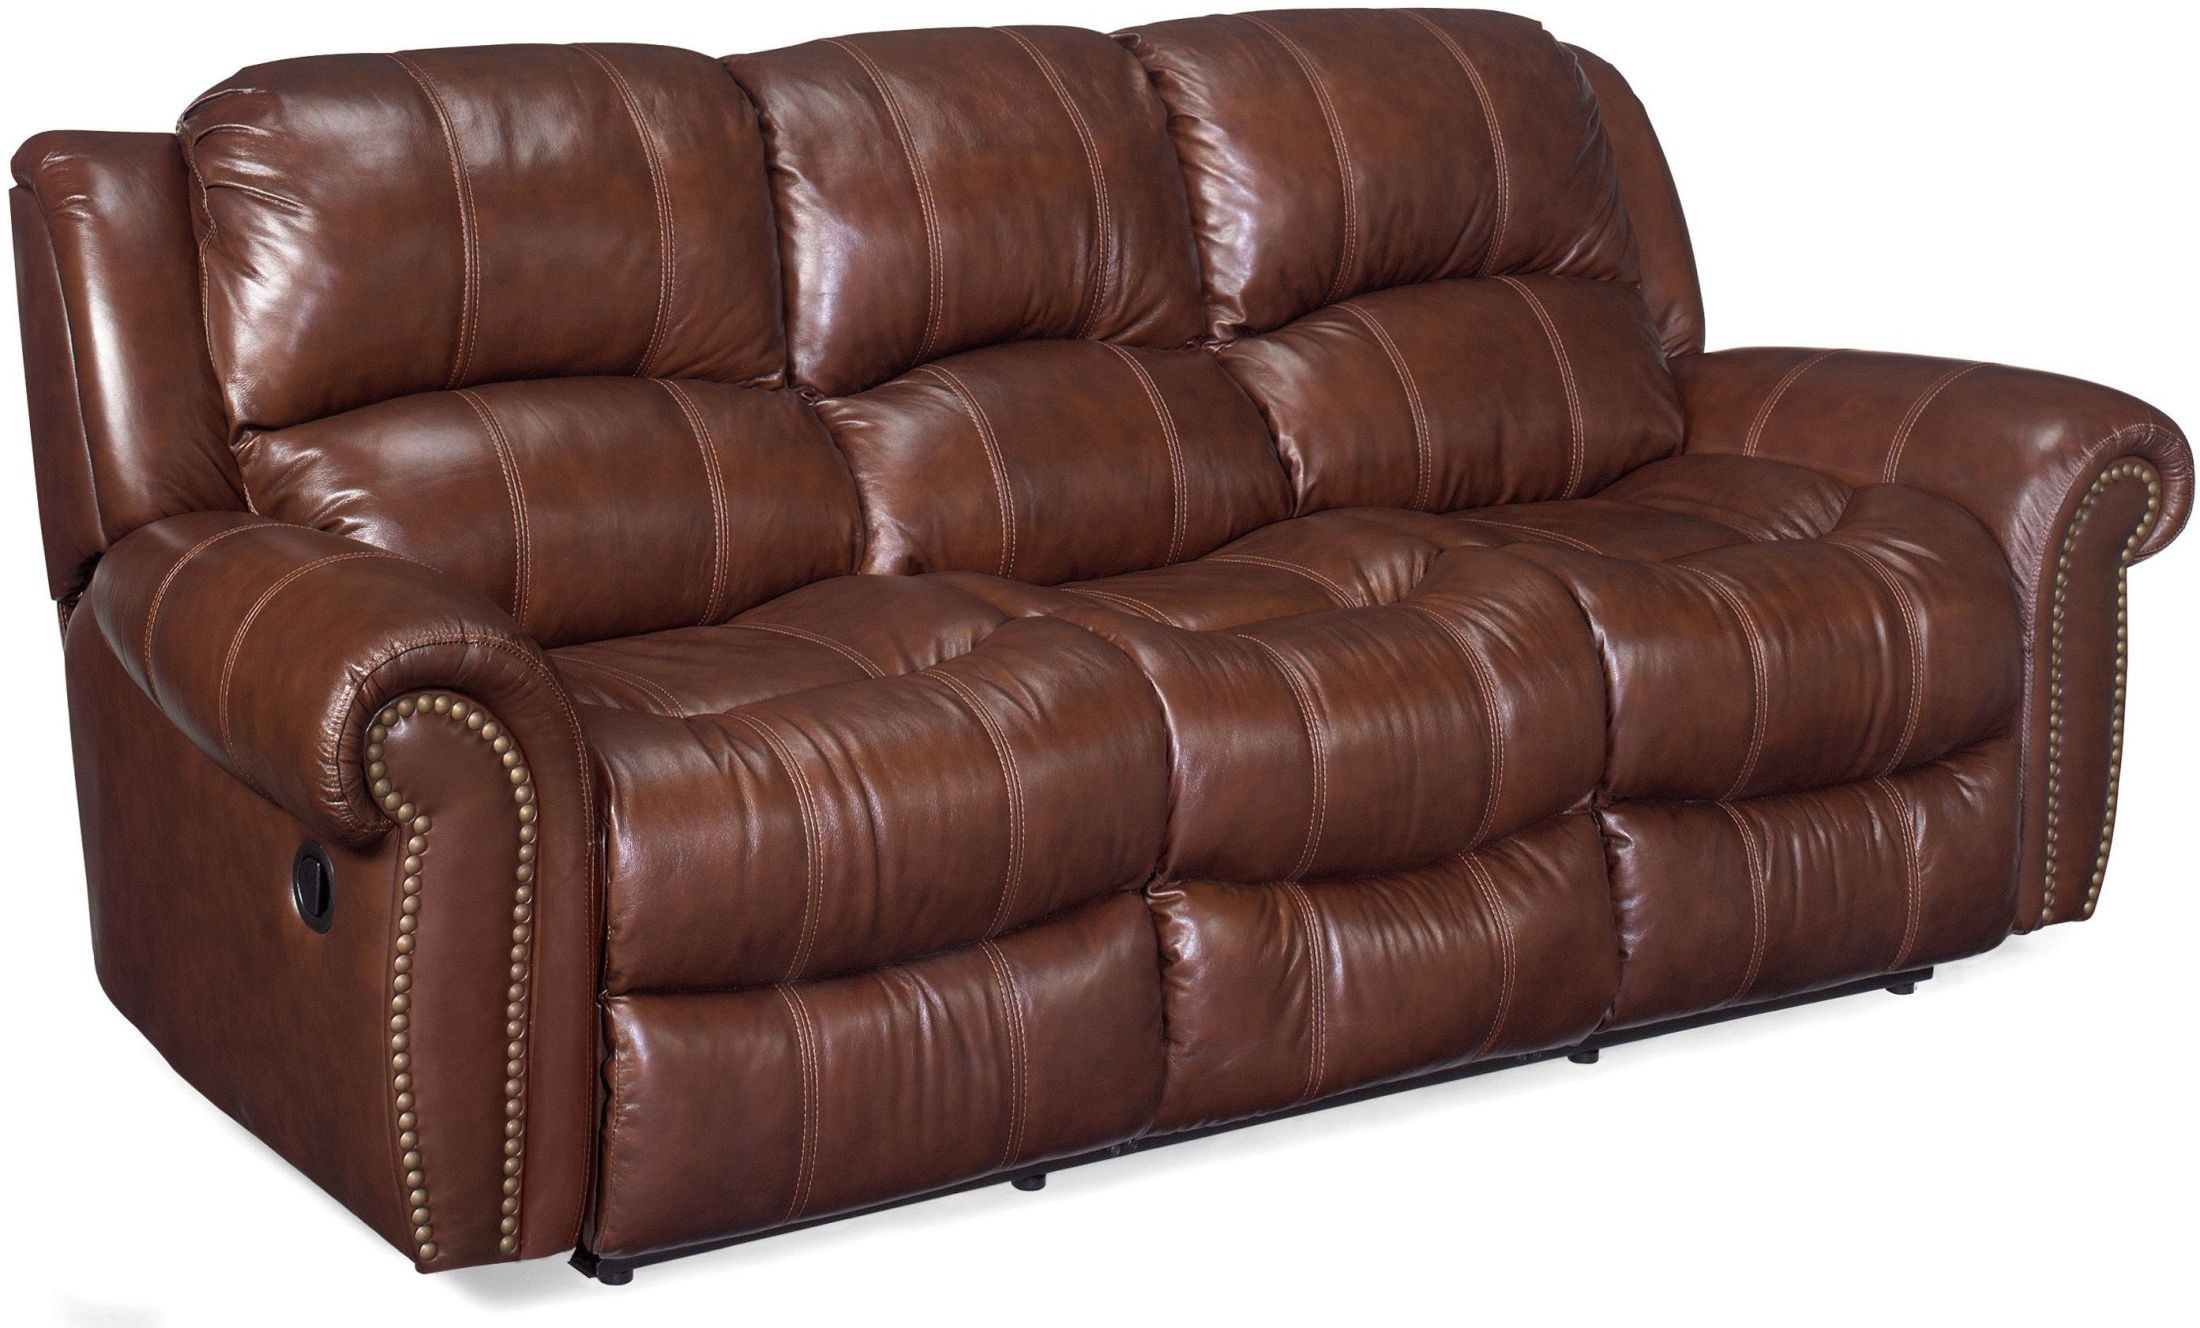 modena 2 seater reclining leather sofa aniline suppliers sebastian brown seat ss601 03 087